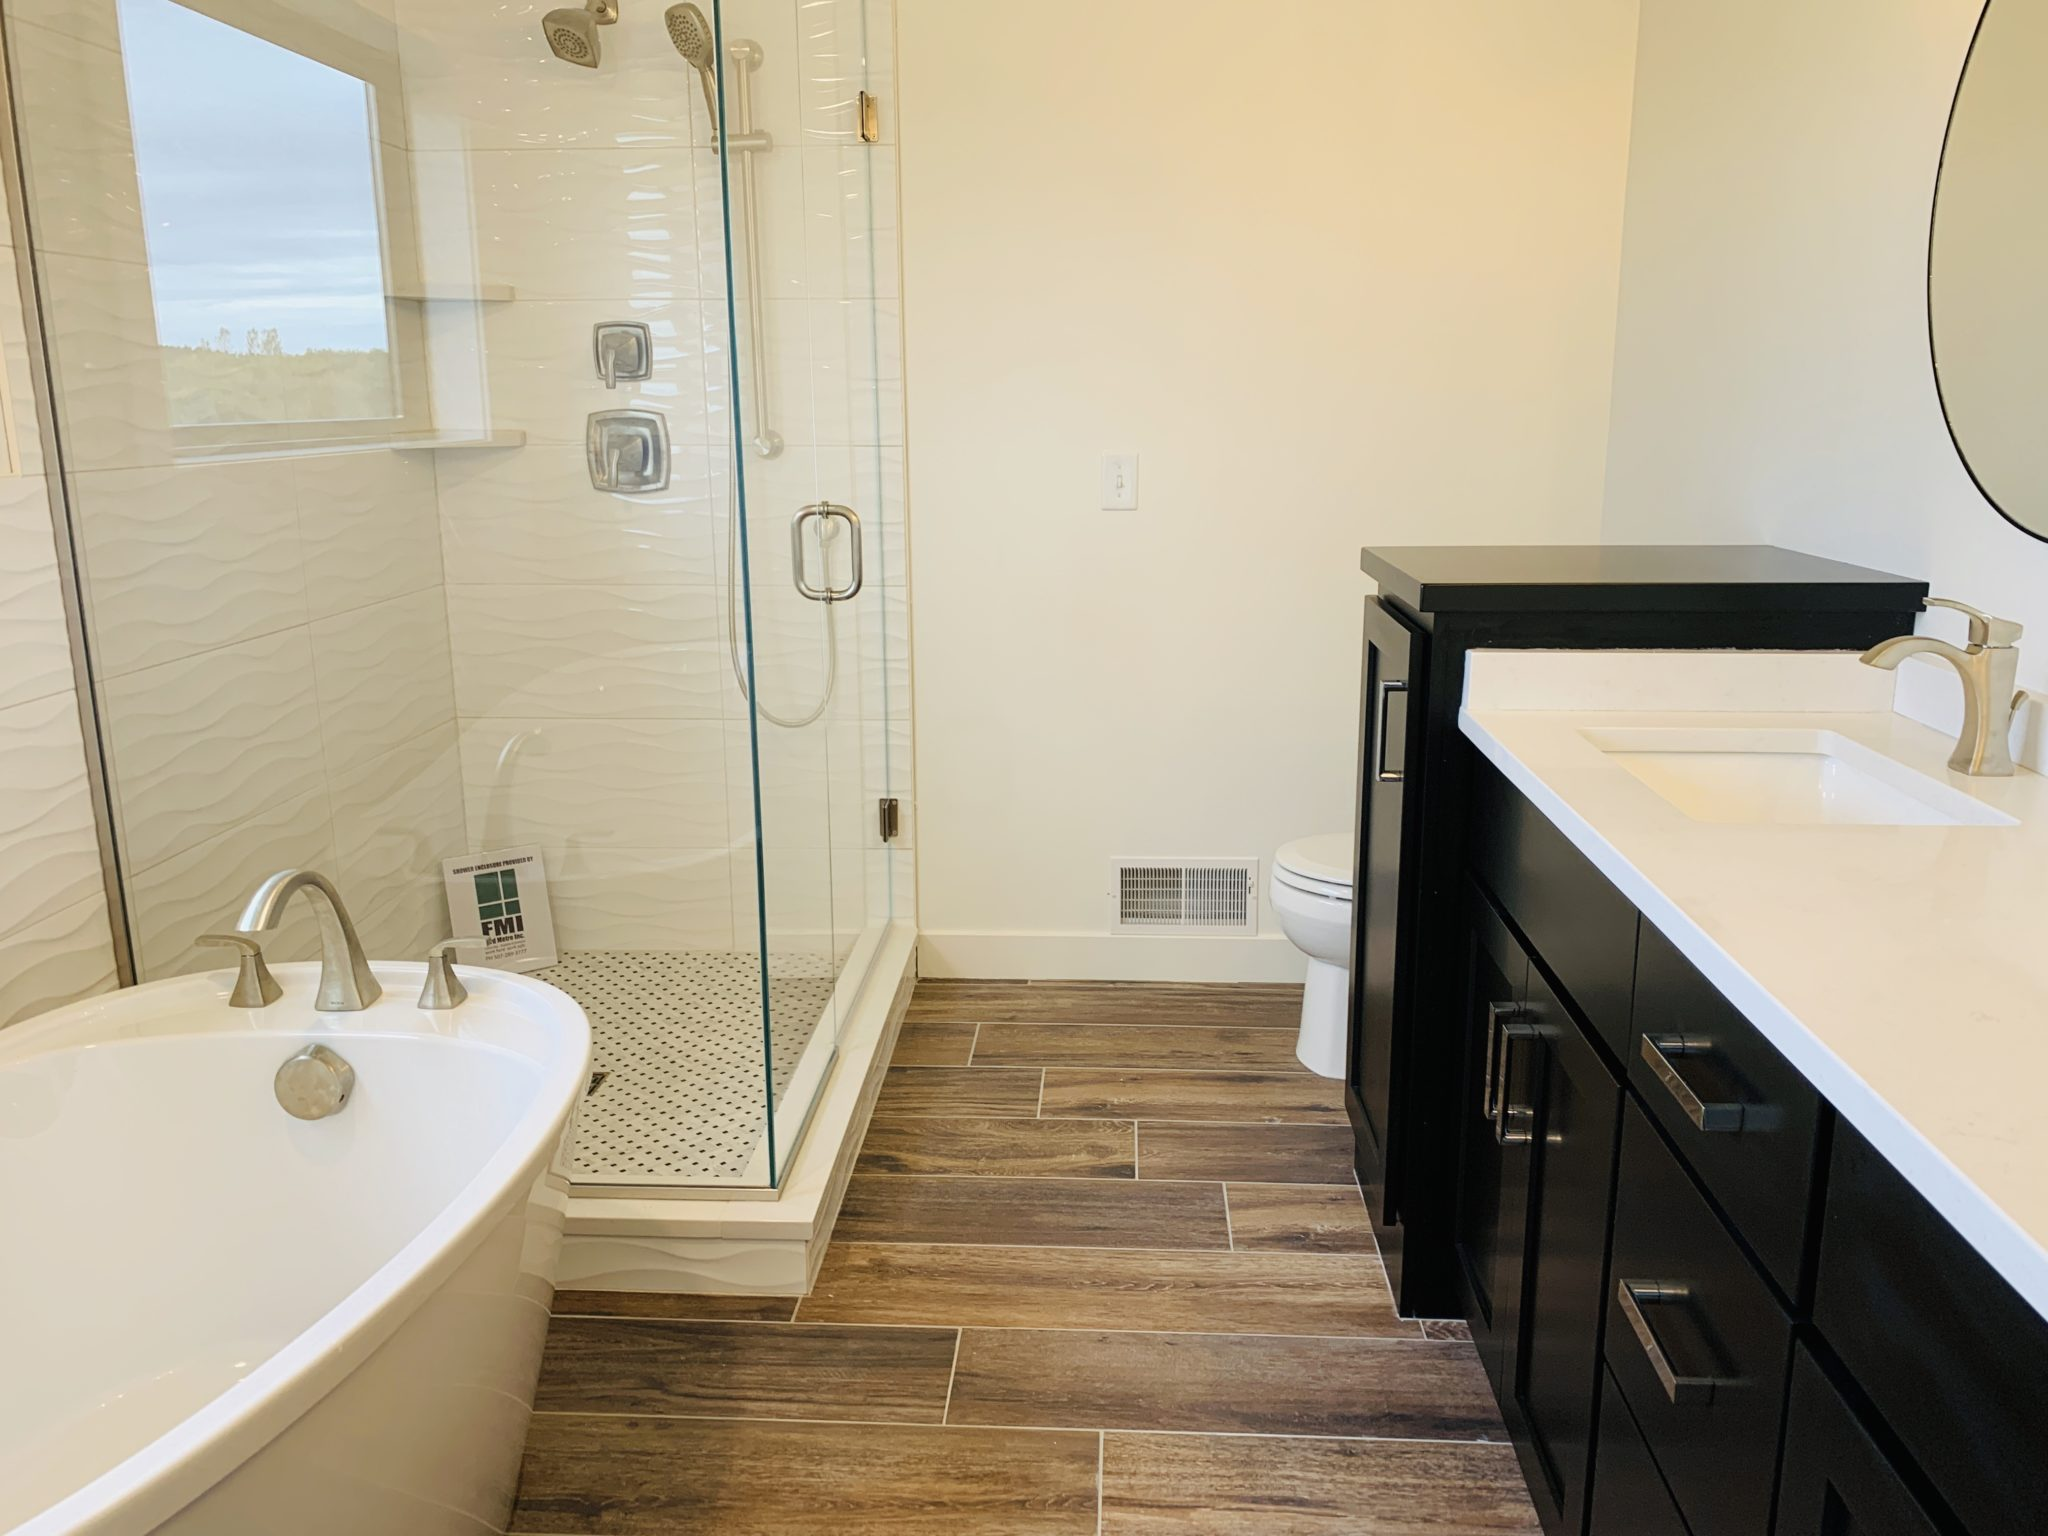 Bathroom with Luxury Vinyl Plank flooring and White Tile Shower